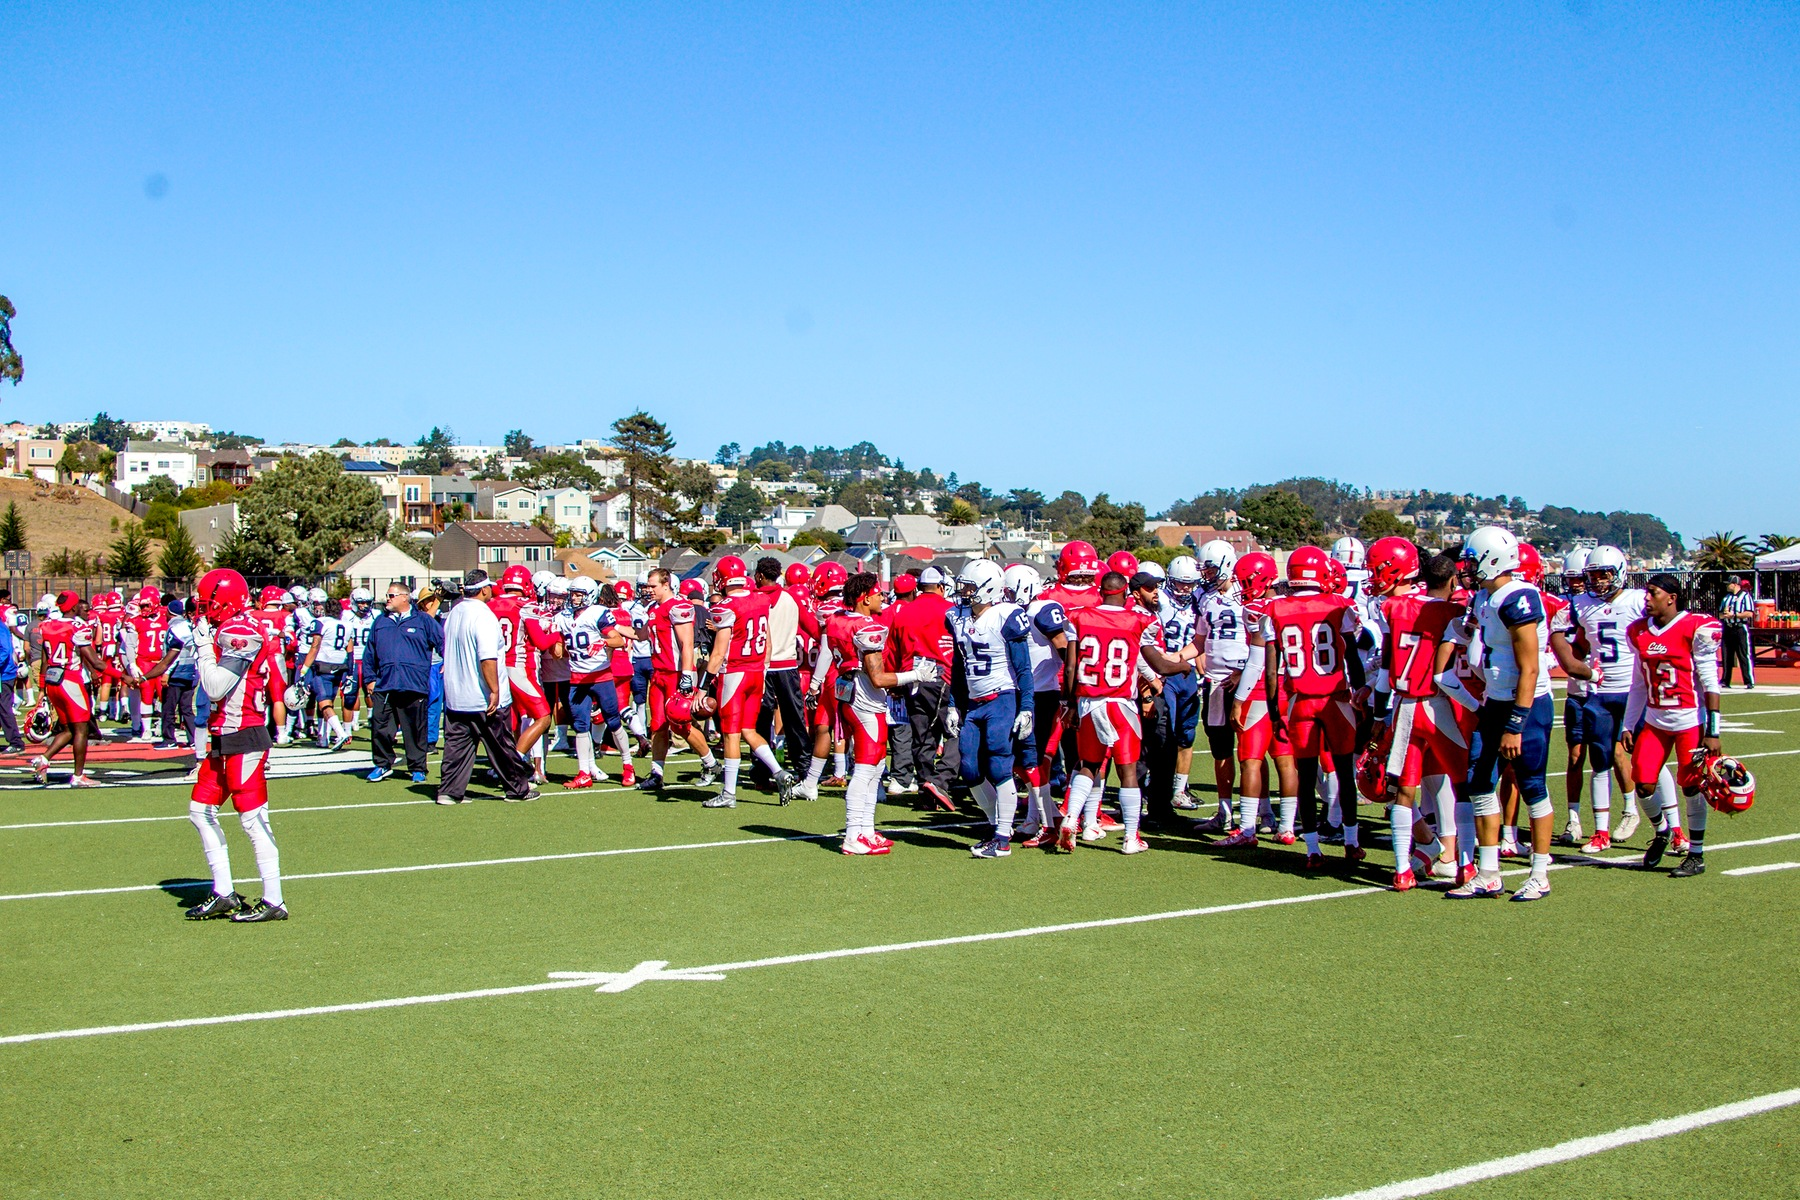 CCSF meet the SRJC players to exchange handshakes before the game.